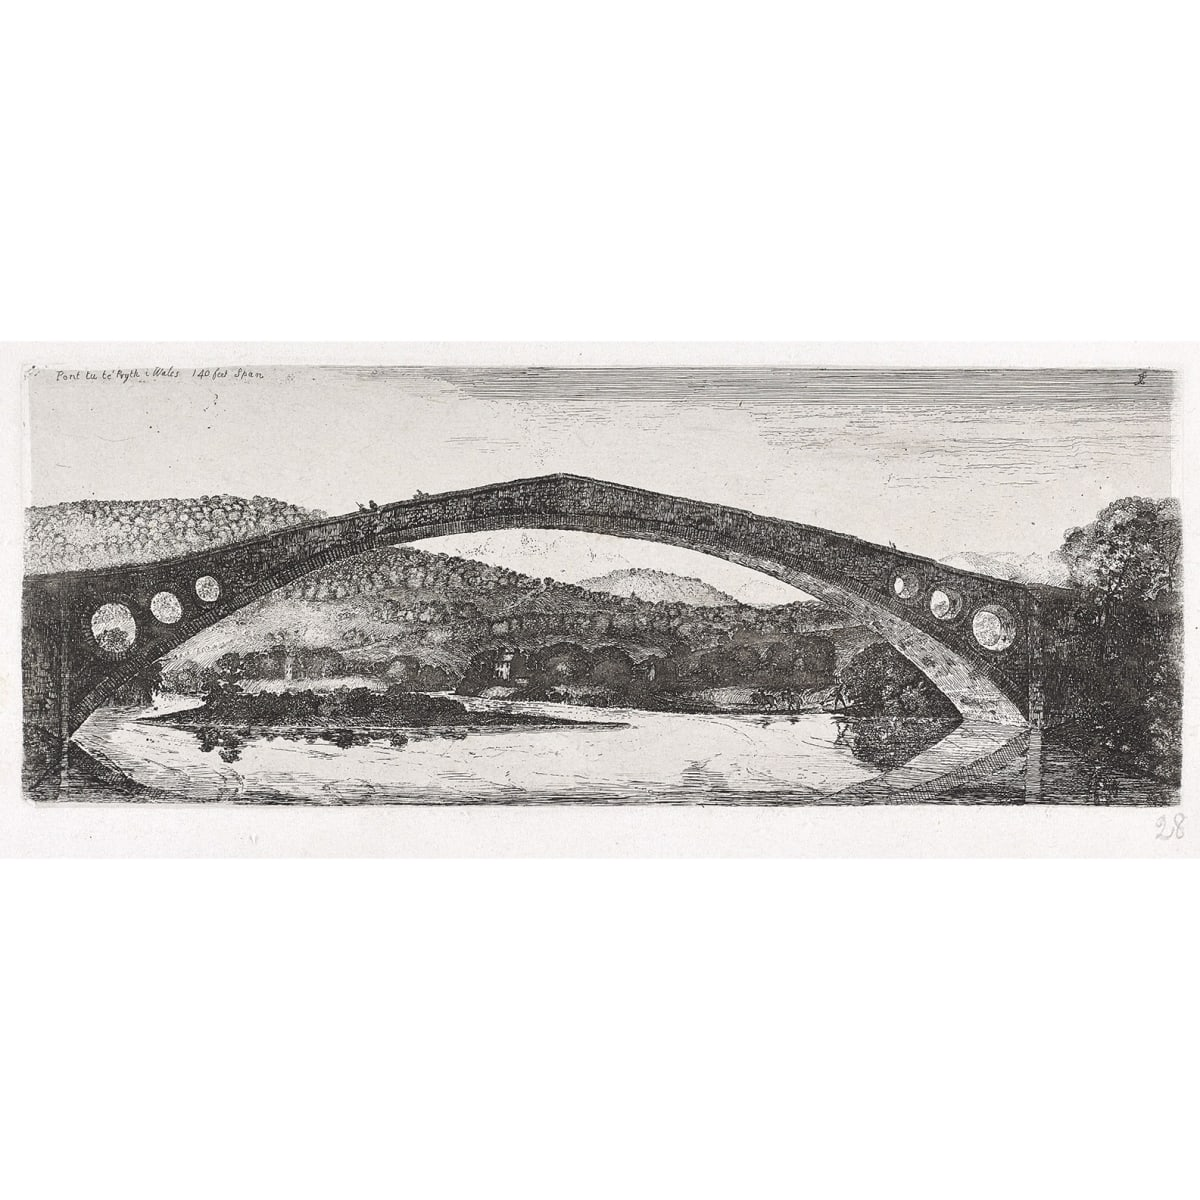 John Clerk of Eldin Pont Y Prydd inscribed 'Pont tu te Pryth i Wales 140 feet span' etching and drypoint 4 1/2 x 11 3/4 inches fifth state